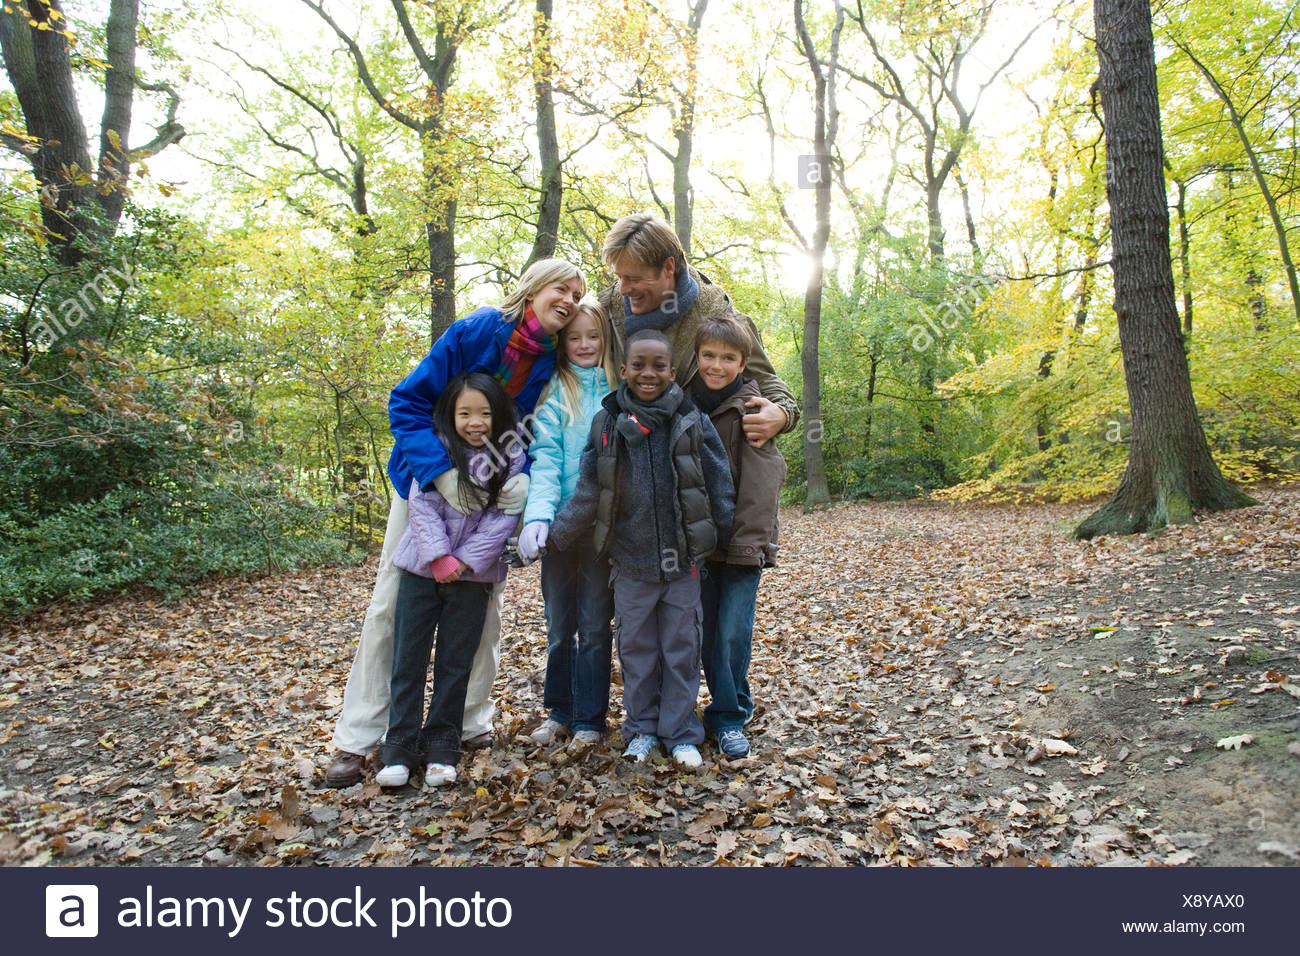 Parents and children in a wood in autumn. Stock Photo